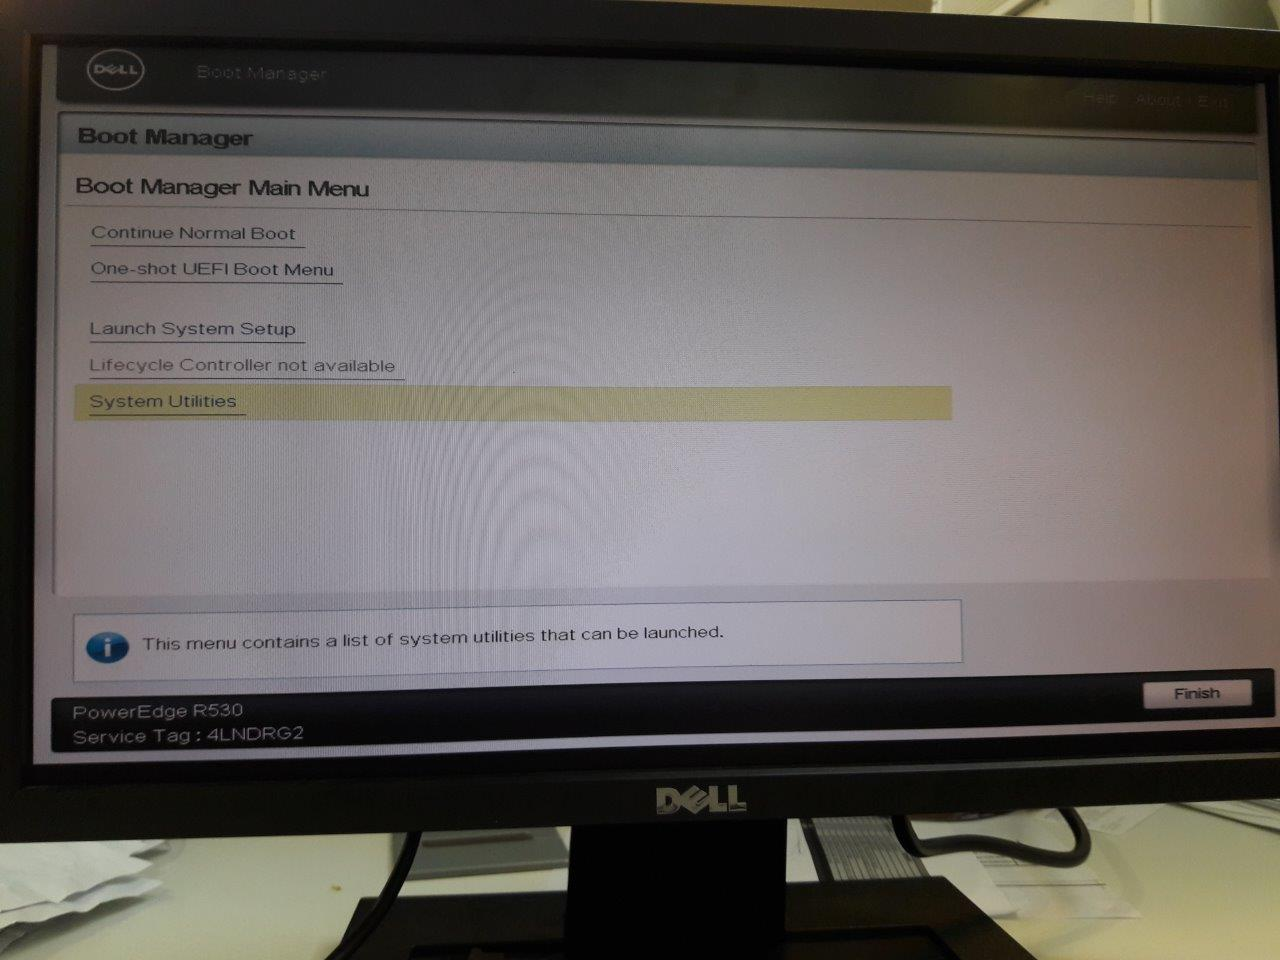 Dell Lifecycle Controller in Recovery Mode | My Small Tech Notes